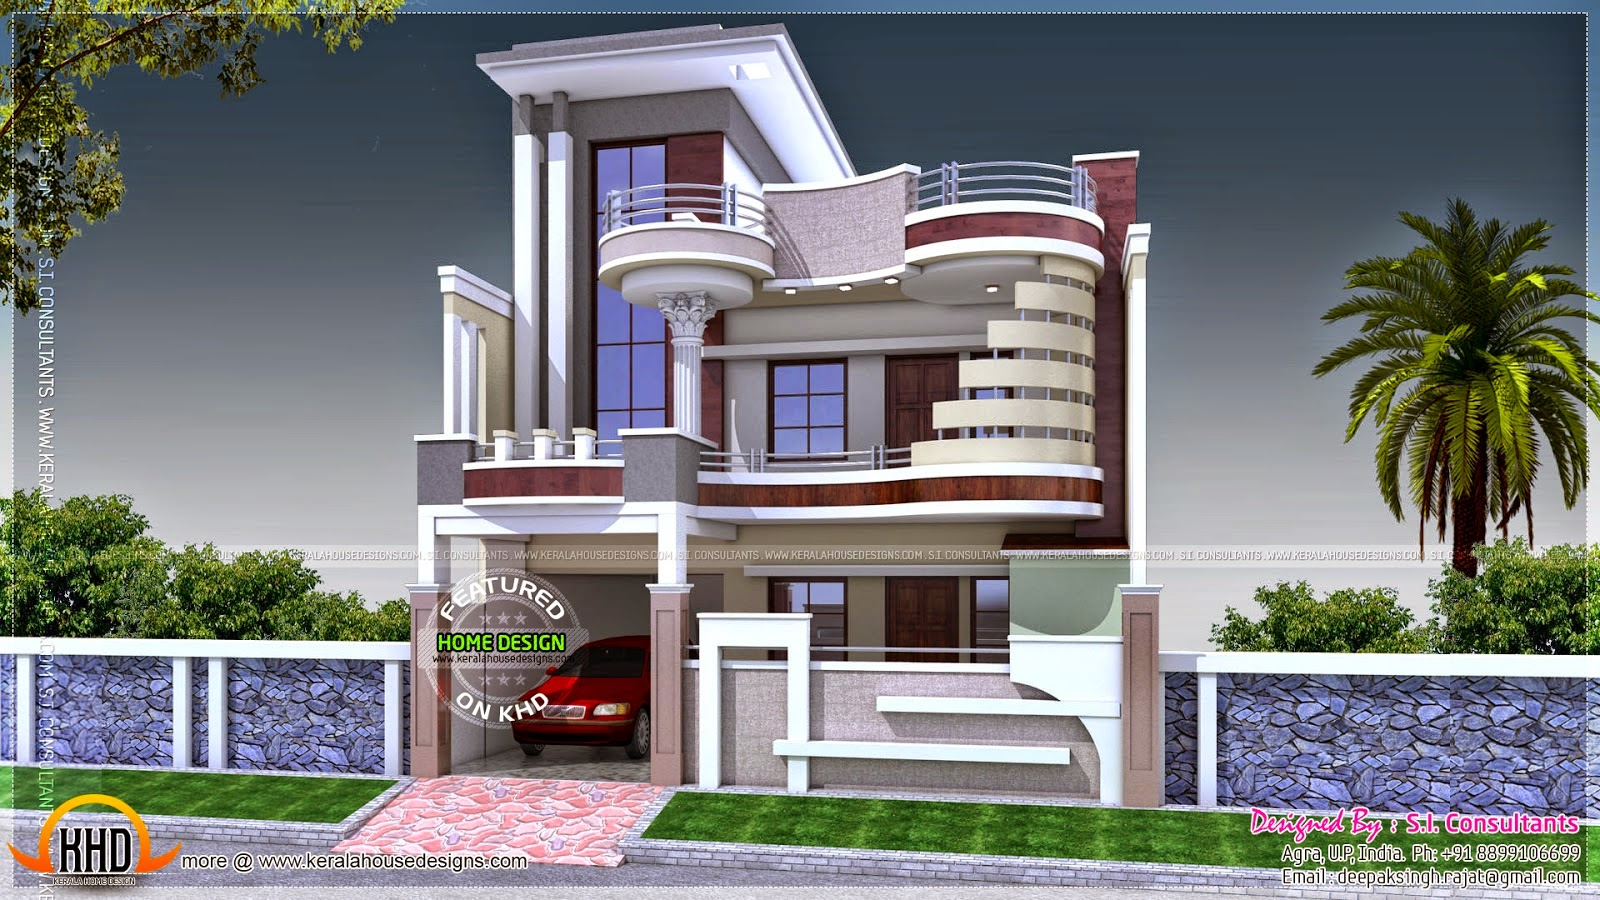 TROPICALIZER: Indian house design